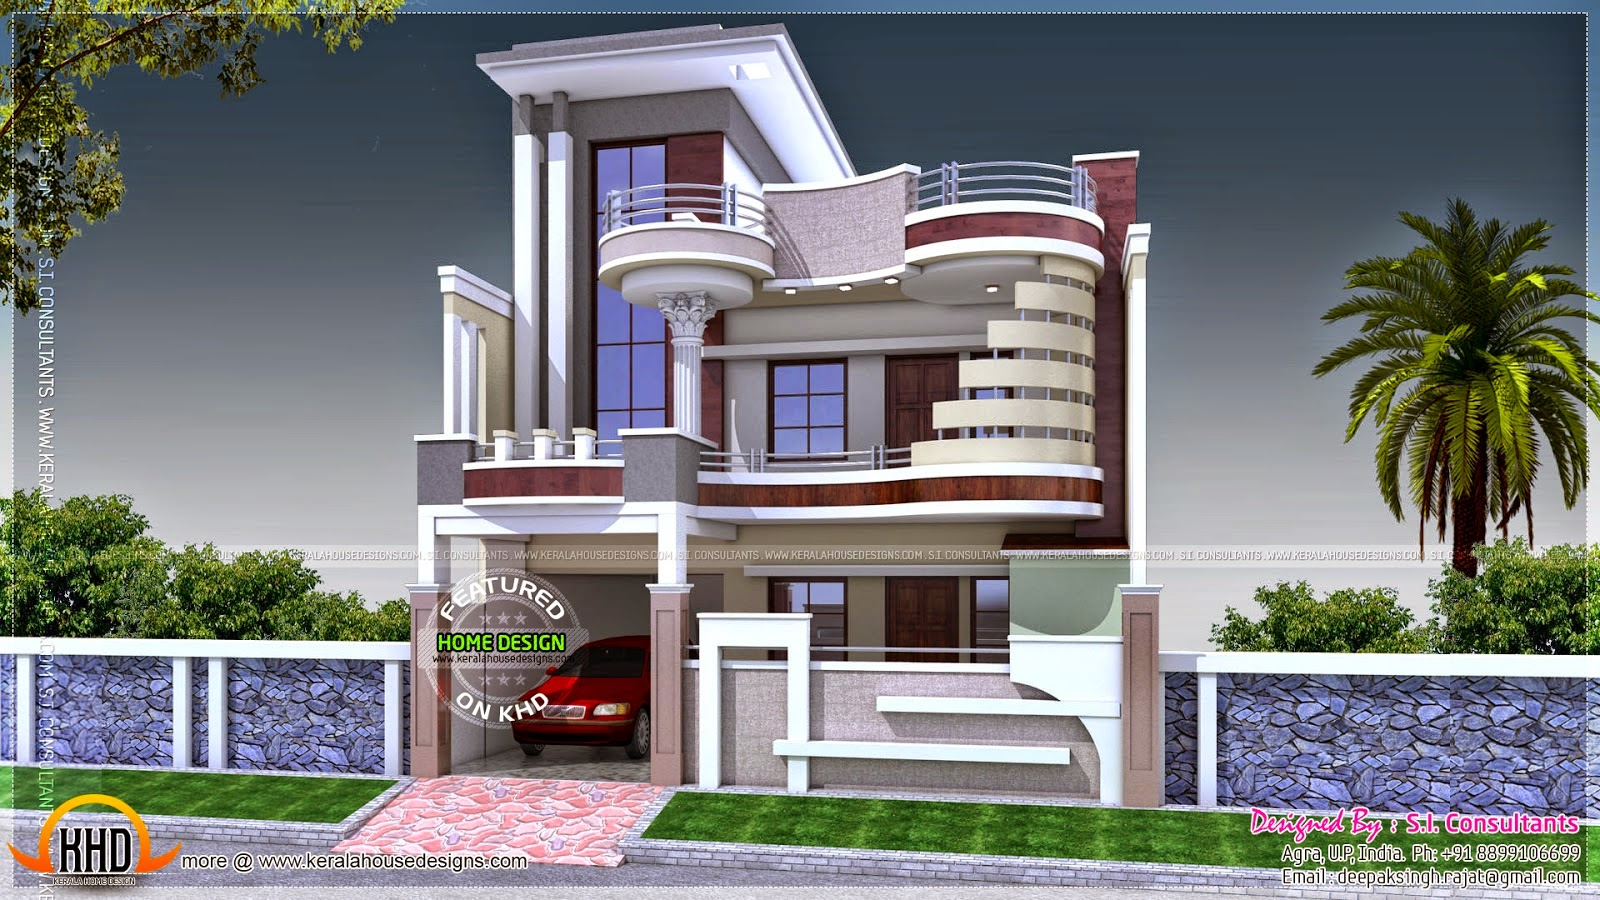 TROPICALIZER: Indian house design